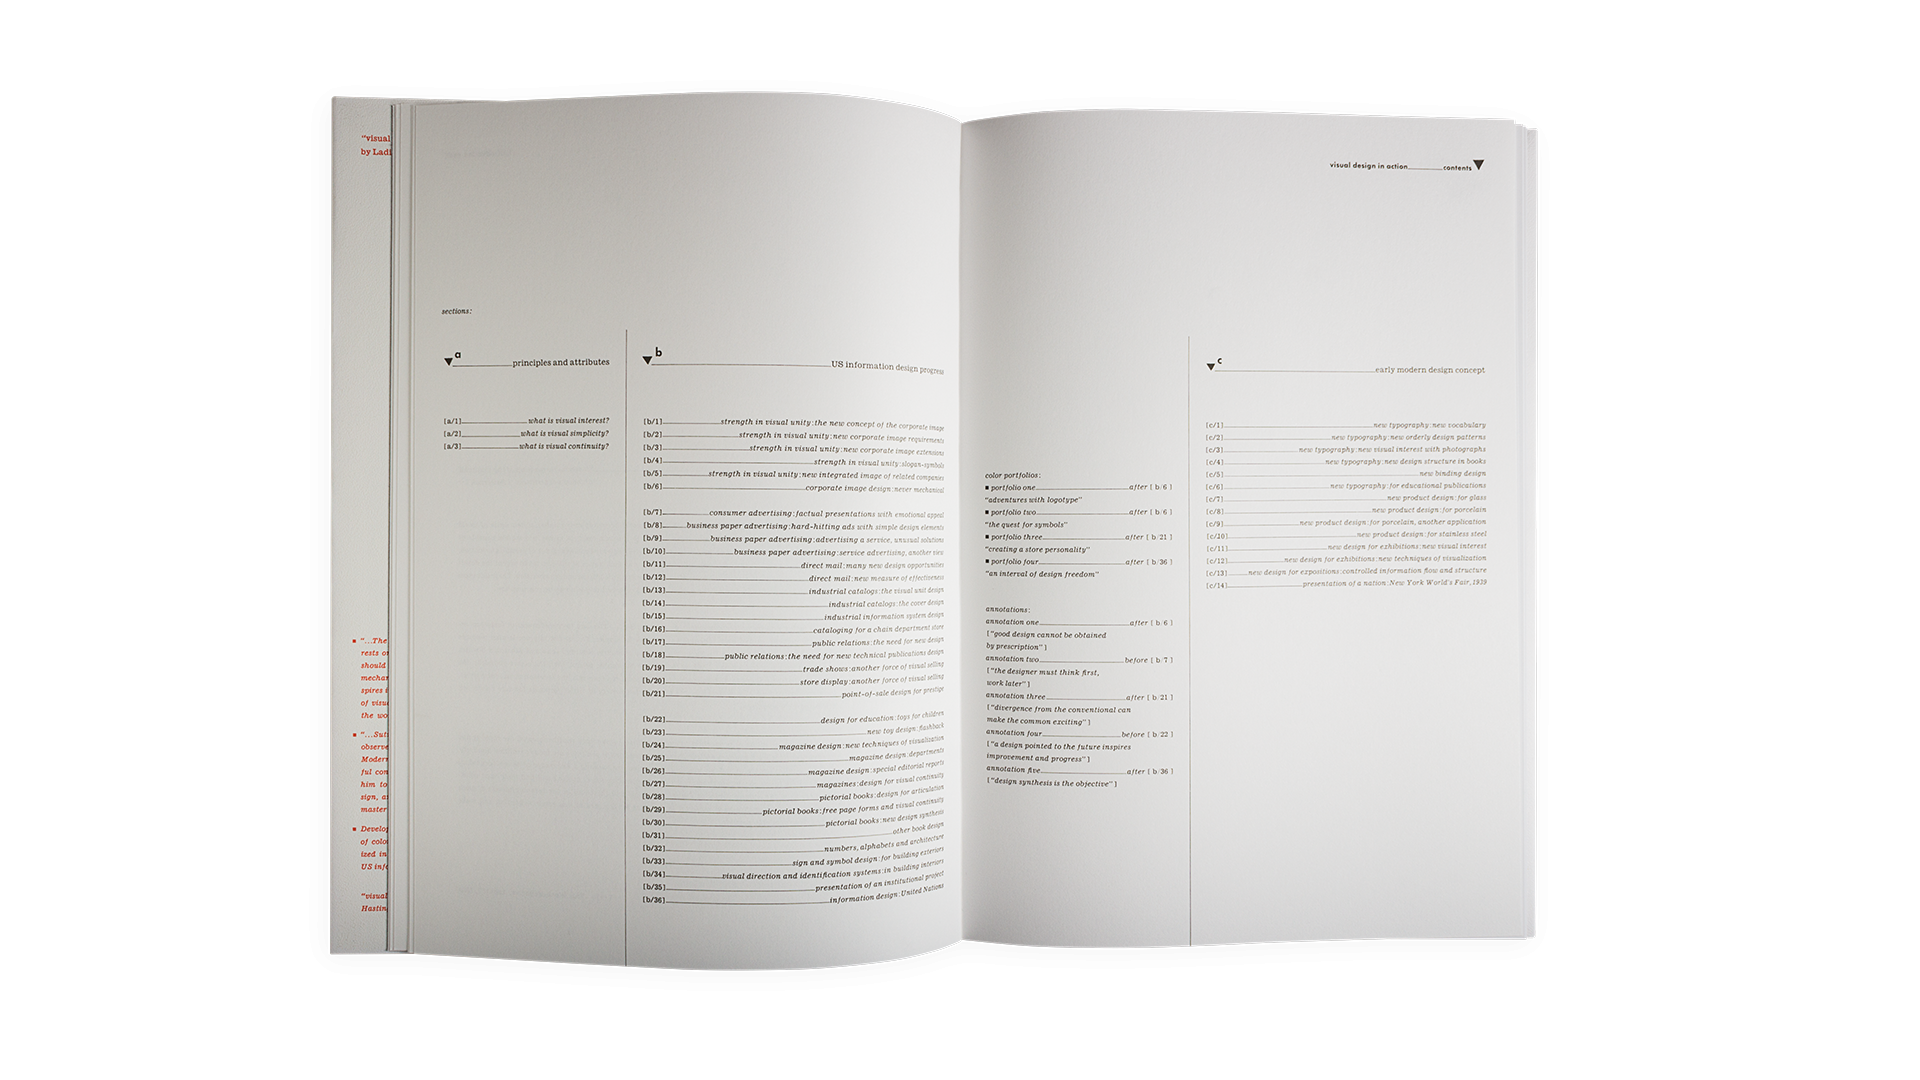 Sutnar's table of contents uses a system of letters and numbers, rather than pages.